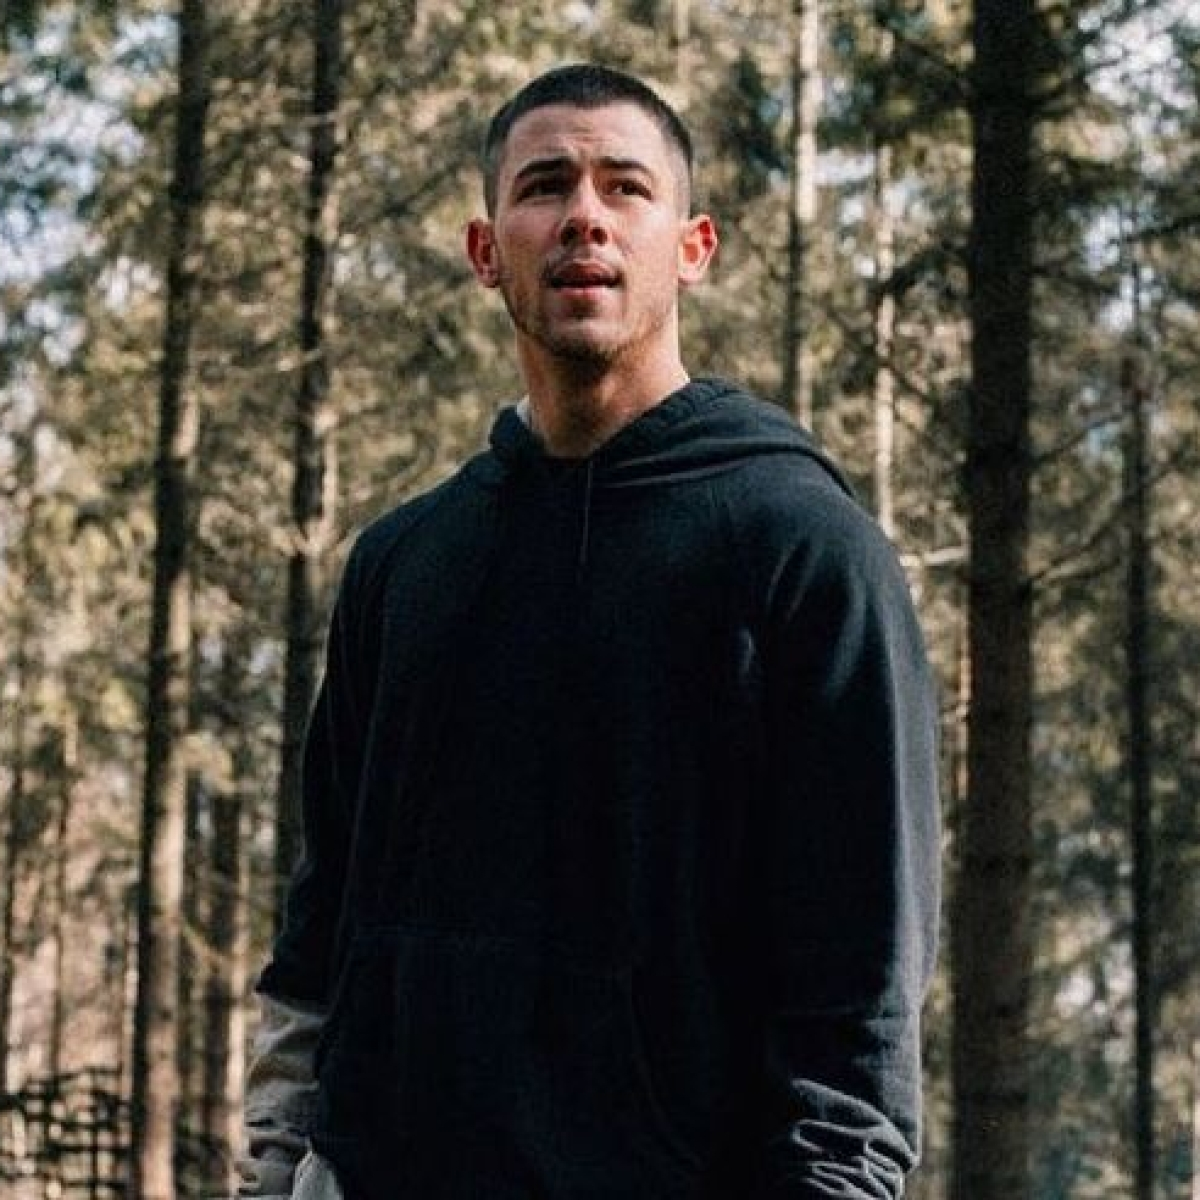 'I have a cracked rib, few bumps, and bruises': Nick Jonas opens up about hospitalisation scare